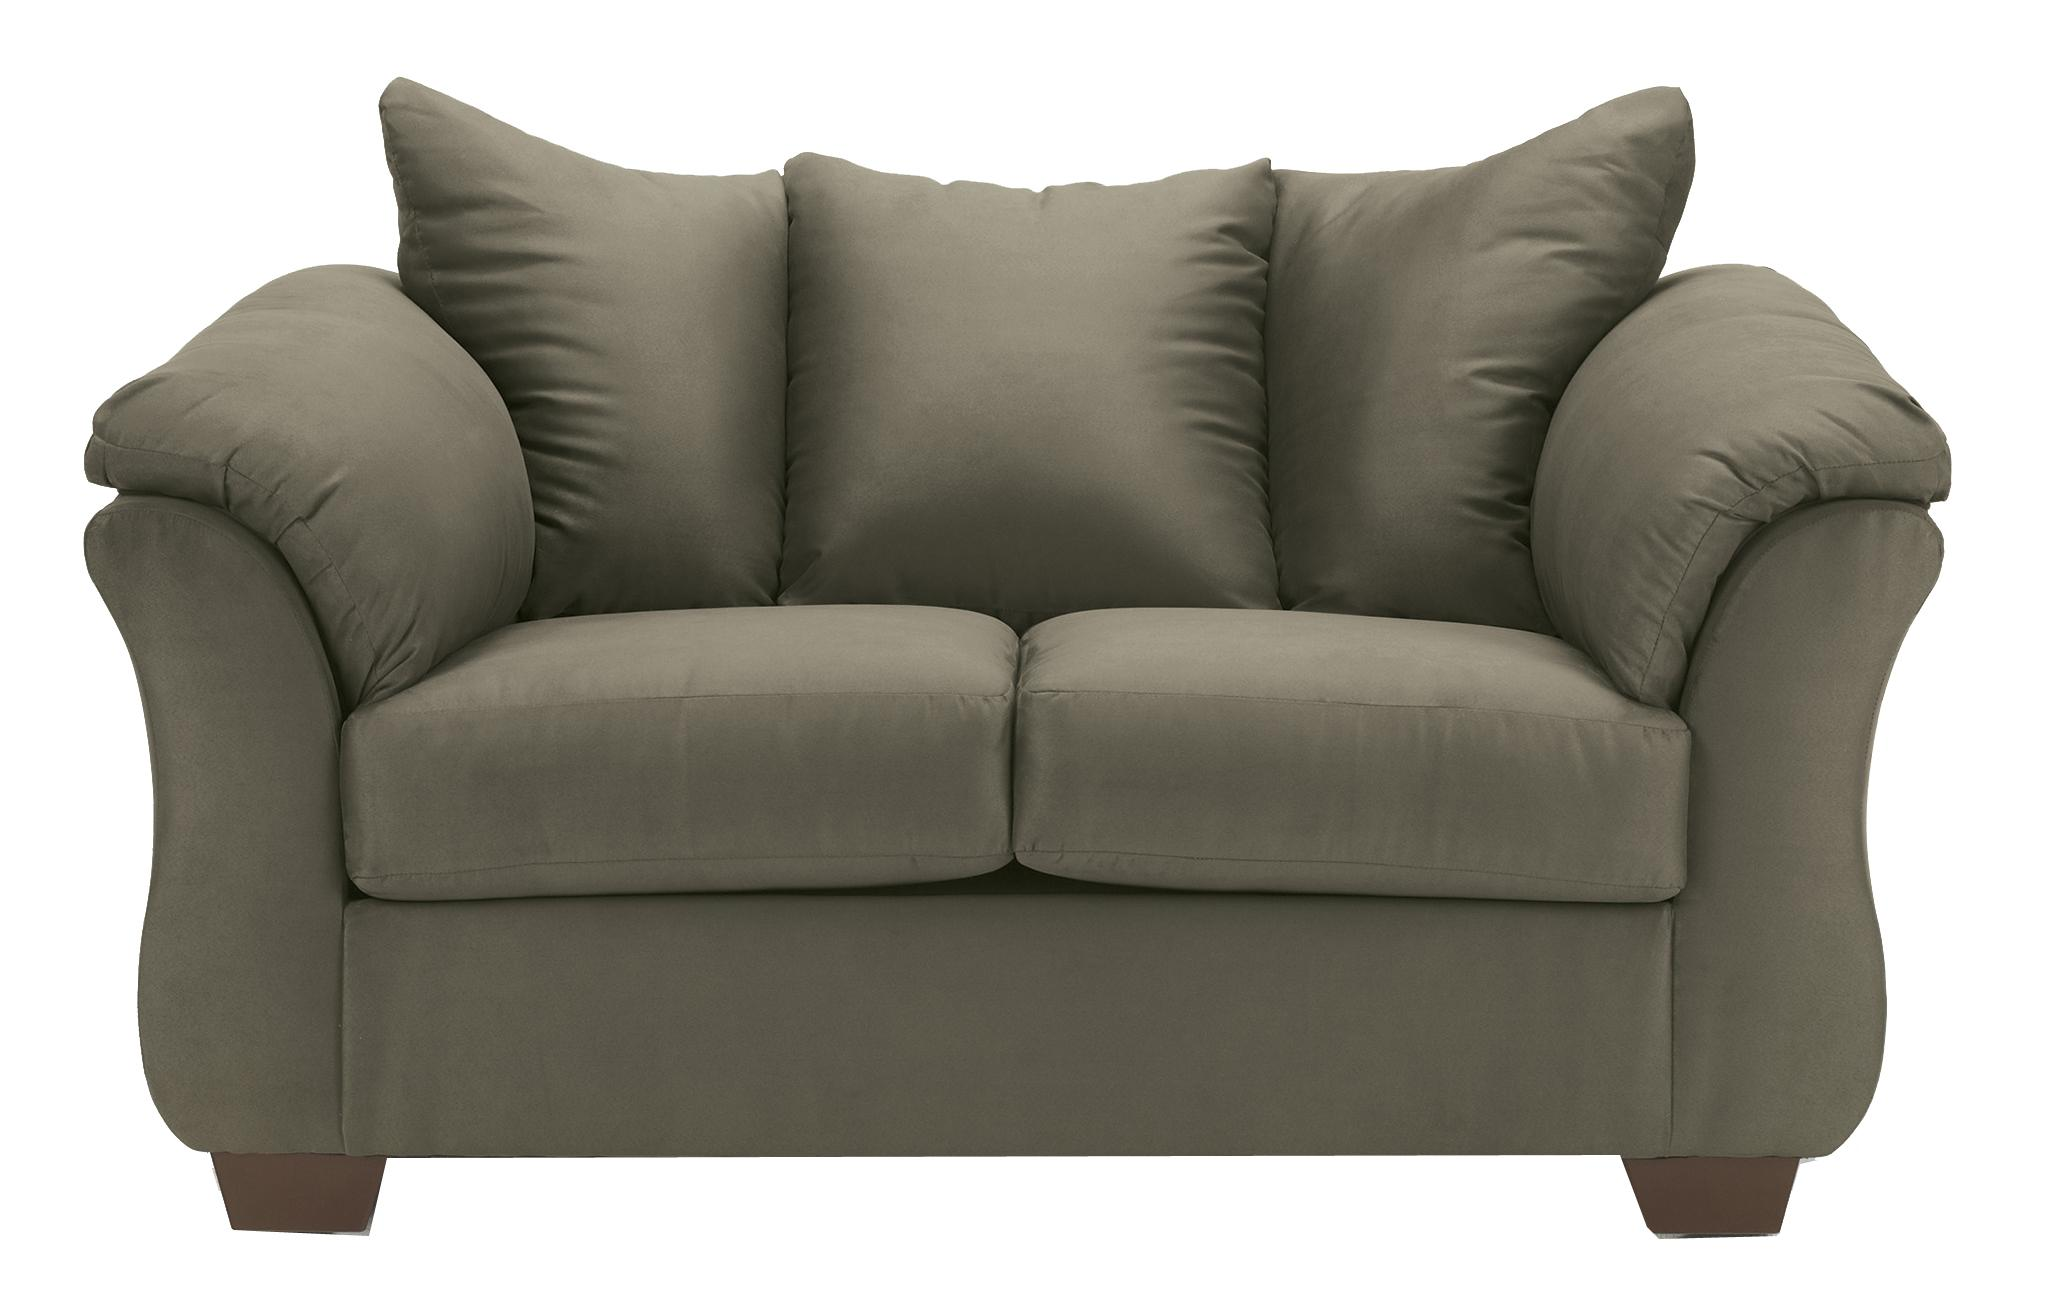 Signature Design by Ashley Darcy - Sage Stationary Loveseat - Item Number: 7500335